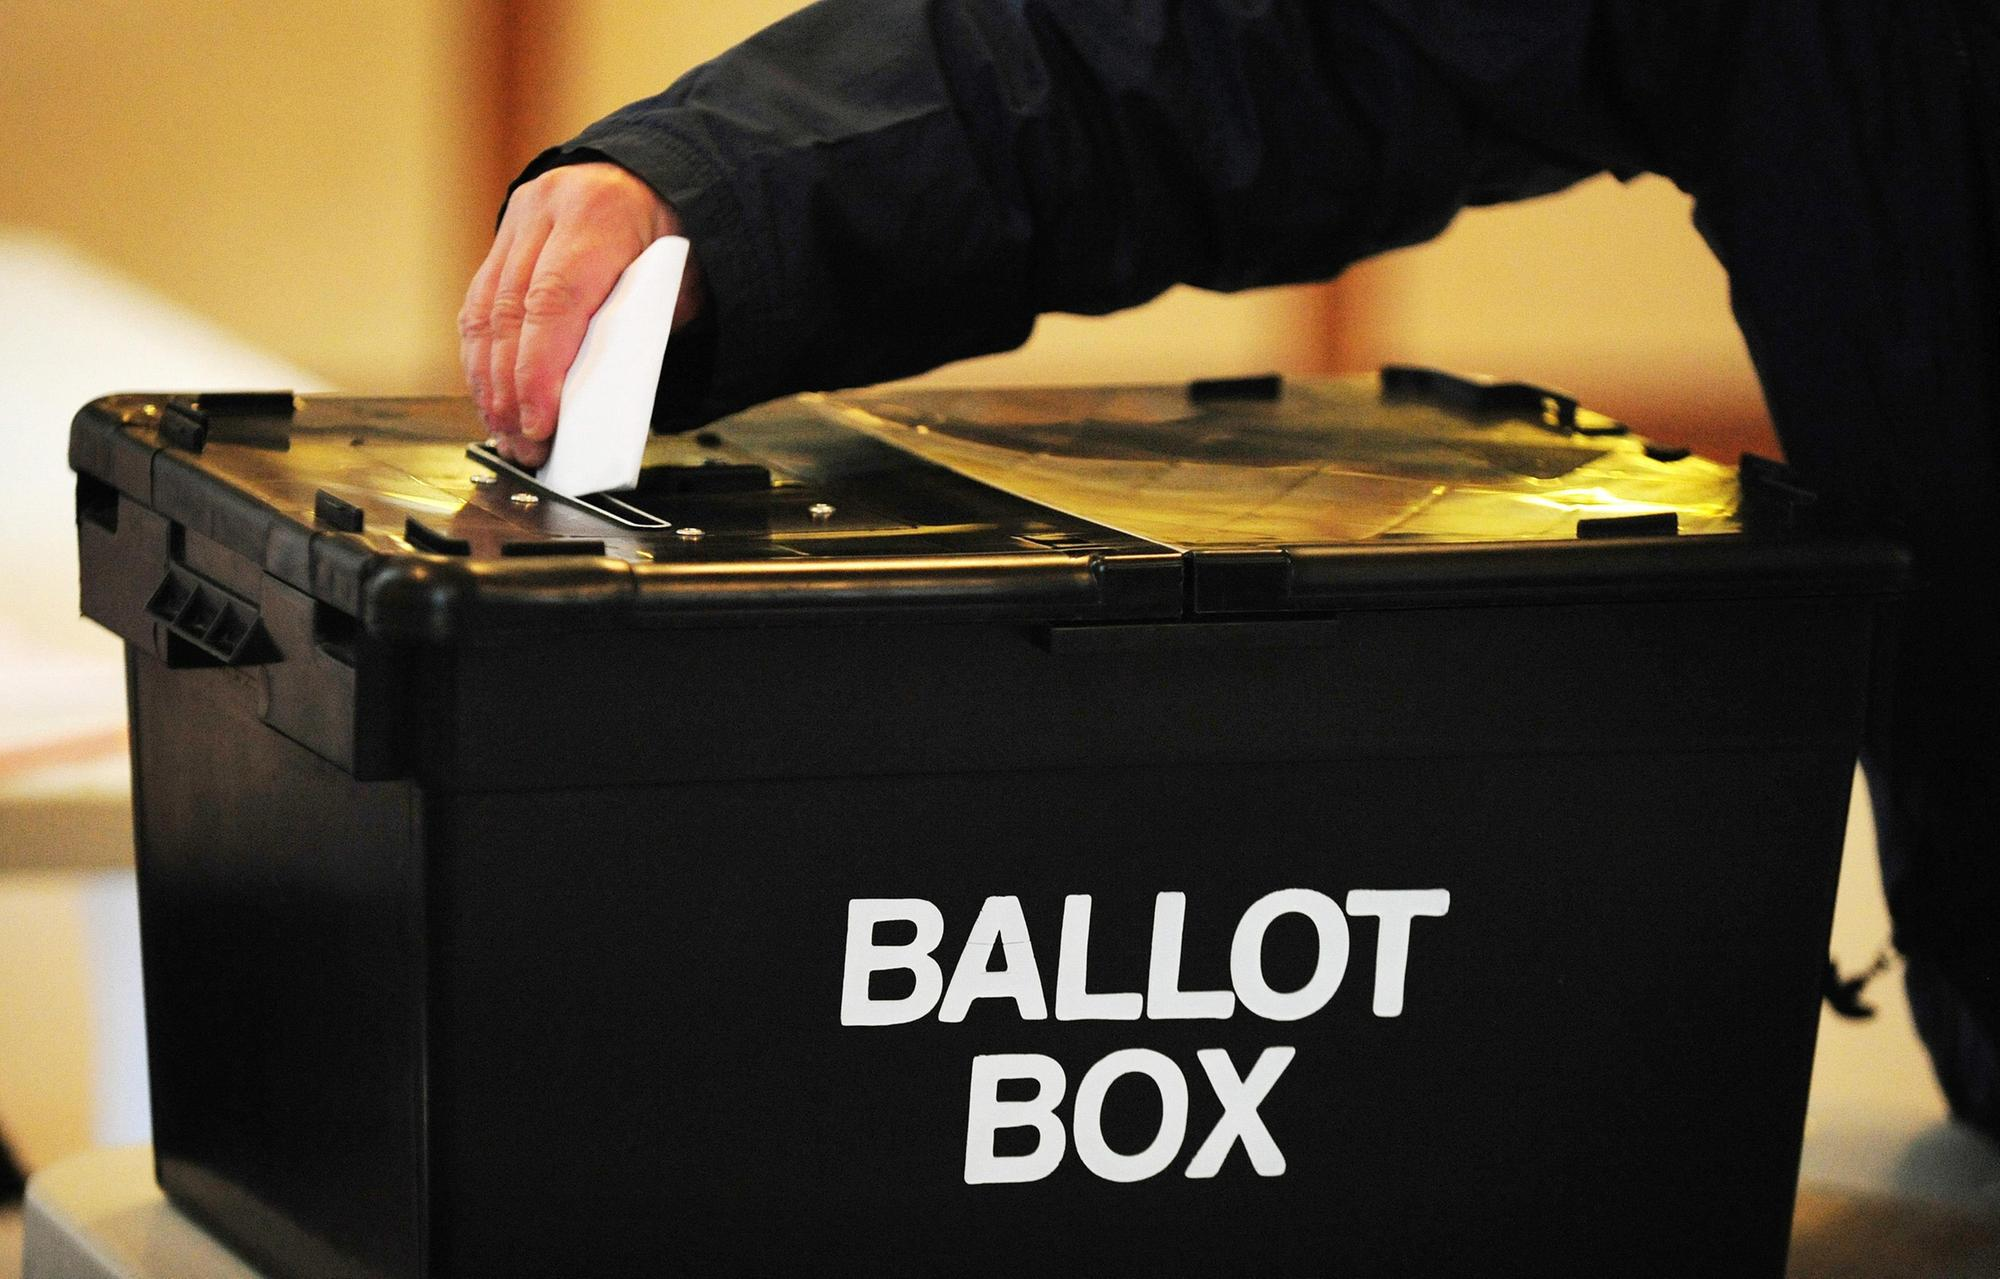 How Holyrood elections will see this group of disenfranchised people able to vote for first time – Angus Robertson